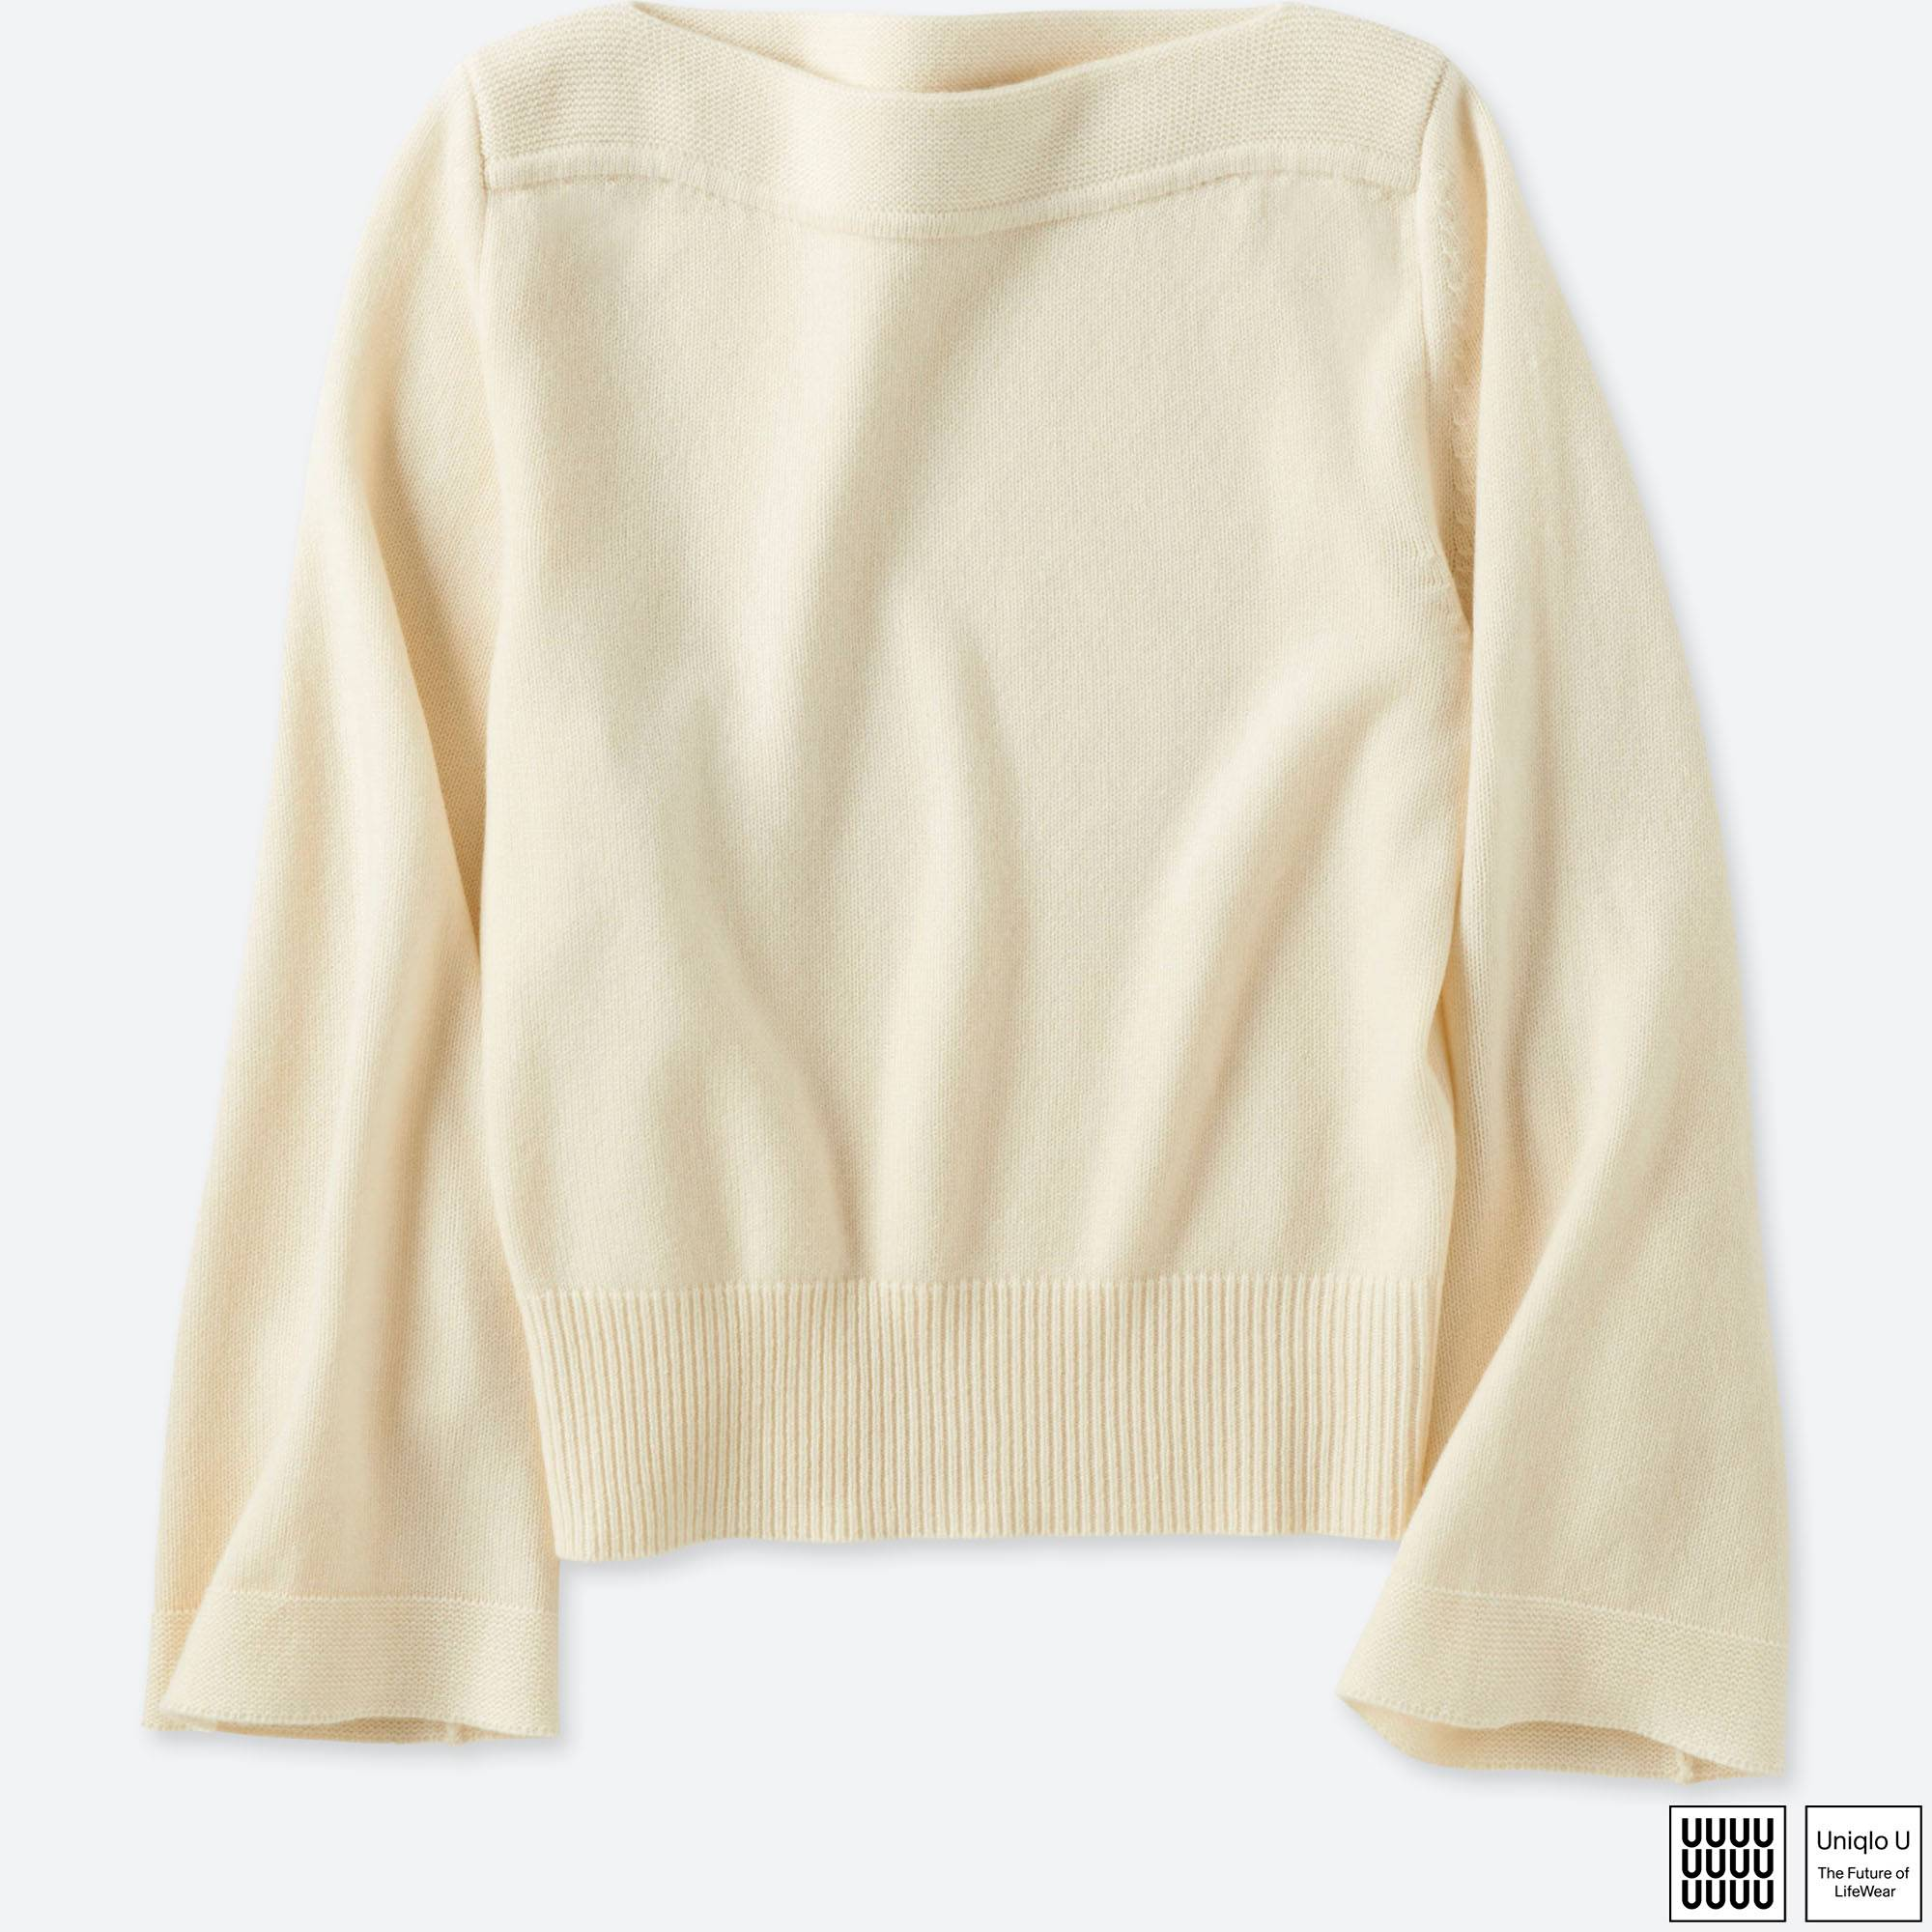 WOMEN U CASHMERE BLEND BOAT NECK SWEATER | UNIQLO US